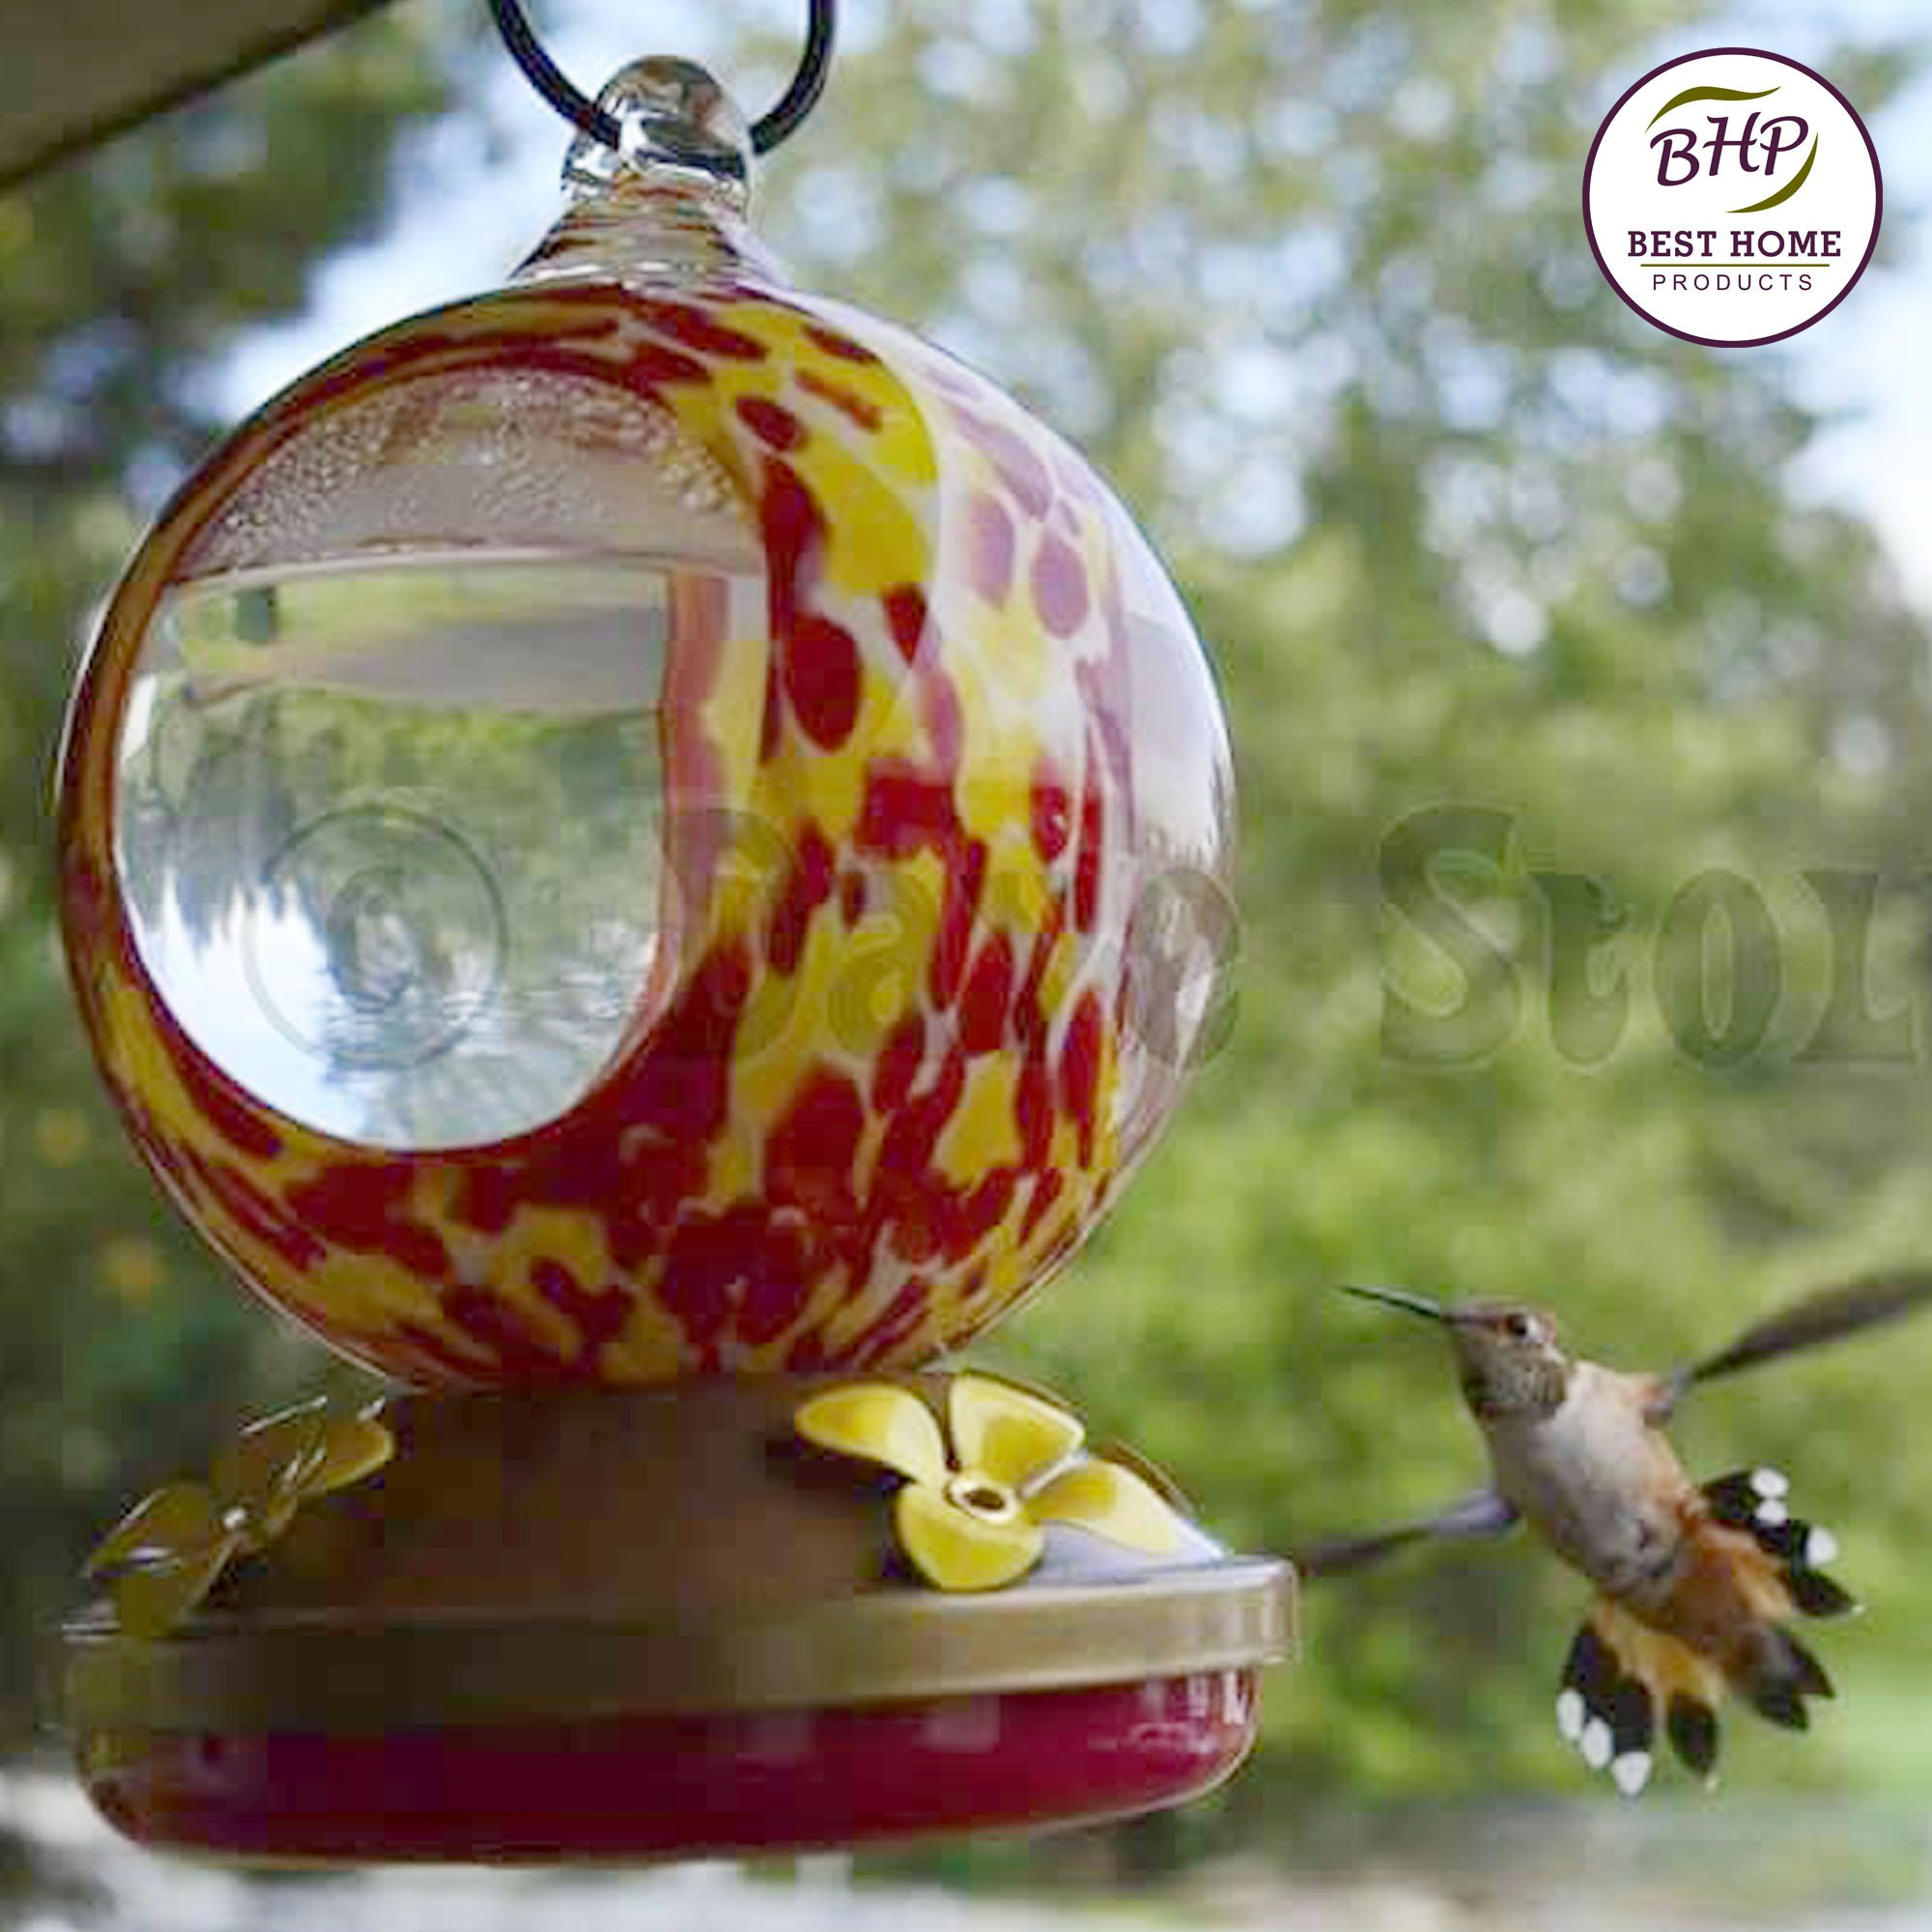 feeders pot pots tea isn can feeder decorative birdhouse part little diy teapot with chipped hummingbird pin got this you and cute favourite for t but a that ideas bird